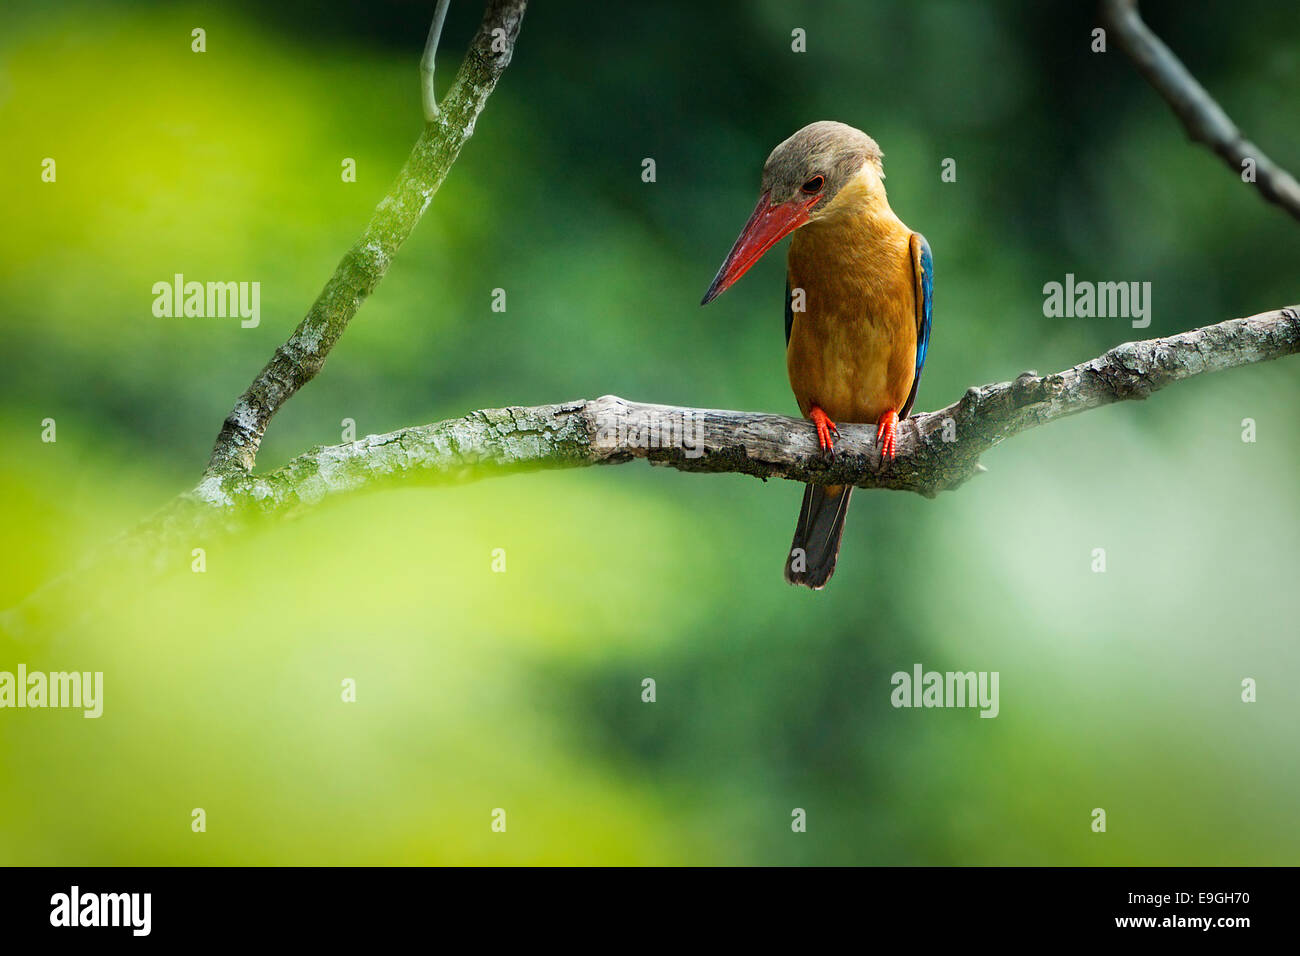 Stork-billed kingfisher (Pelargopsis capensis) hunting in a mangrove - Stock Image